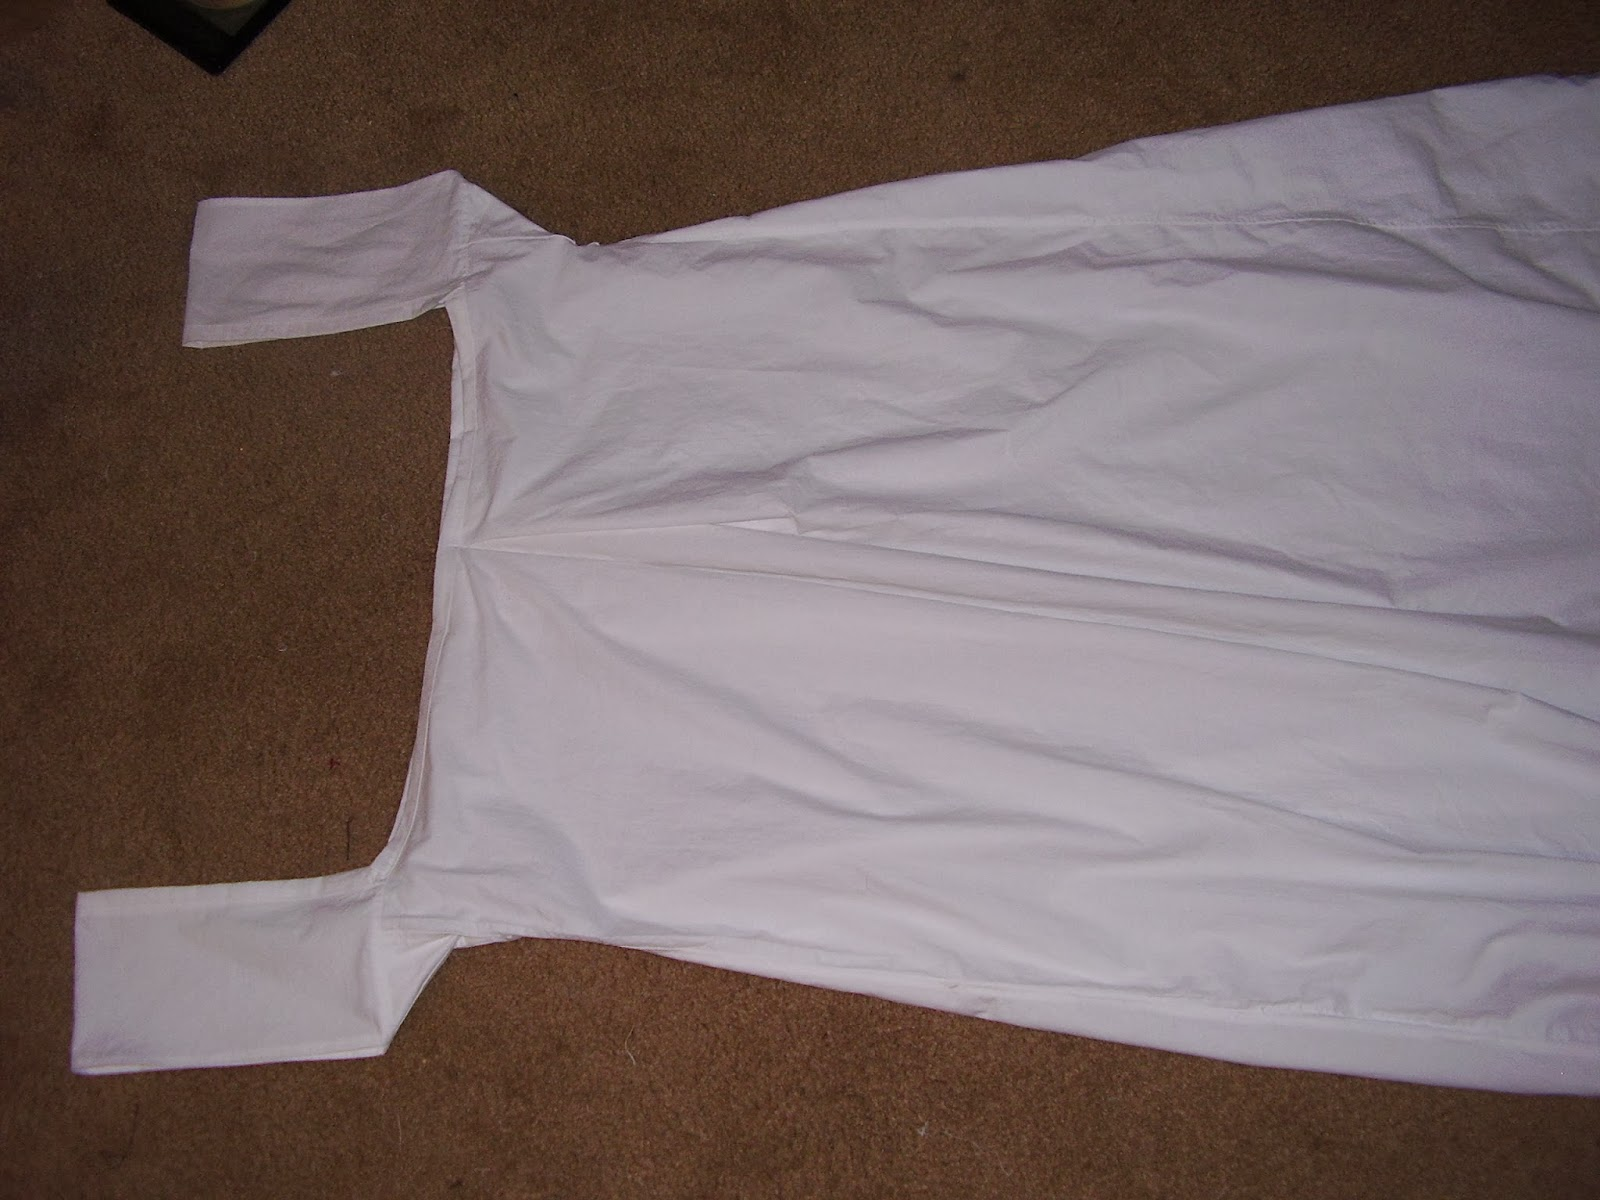 Completed Regency chemise.